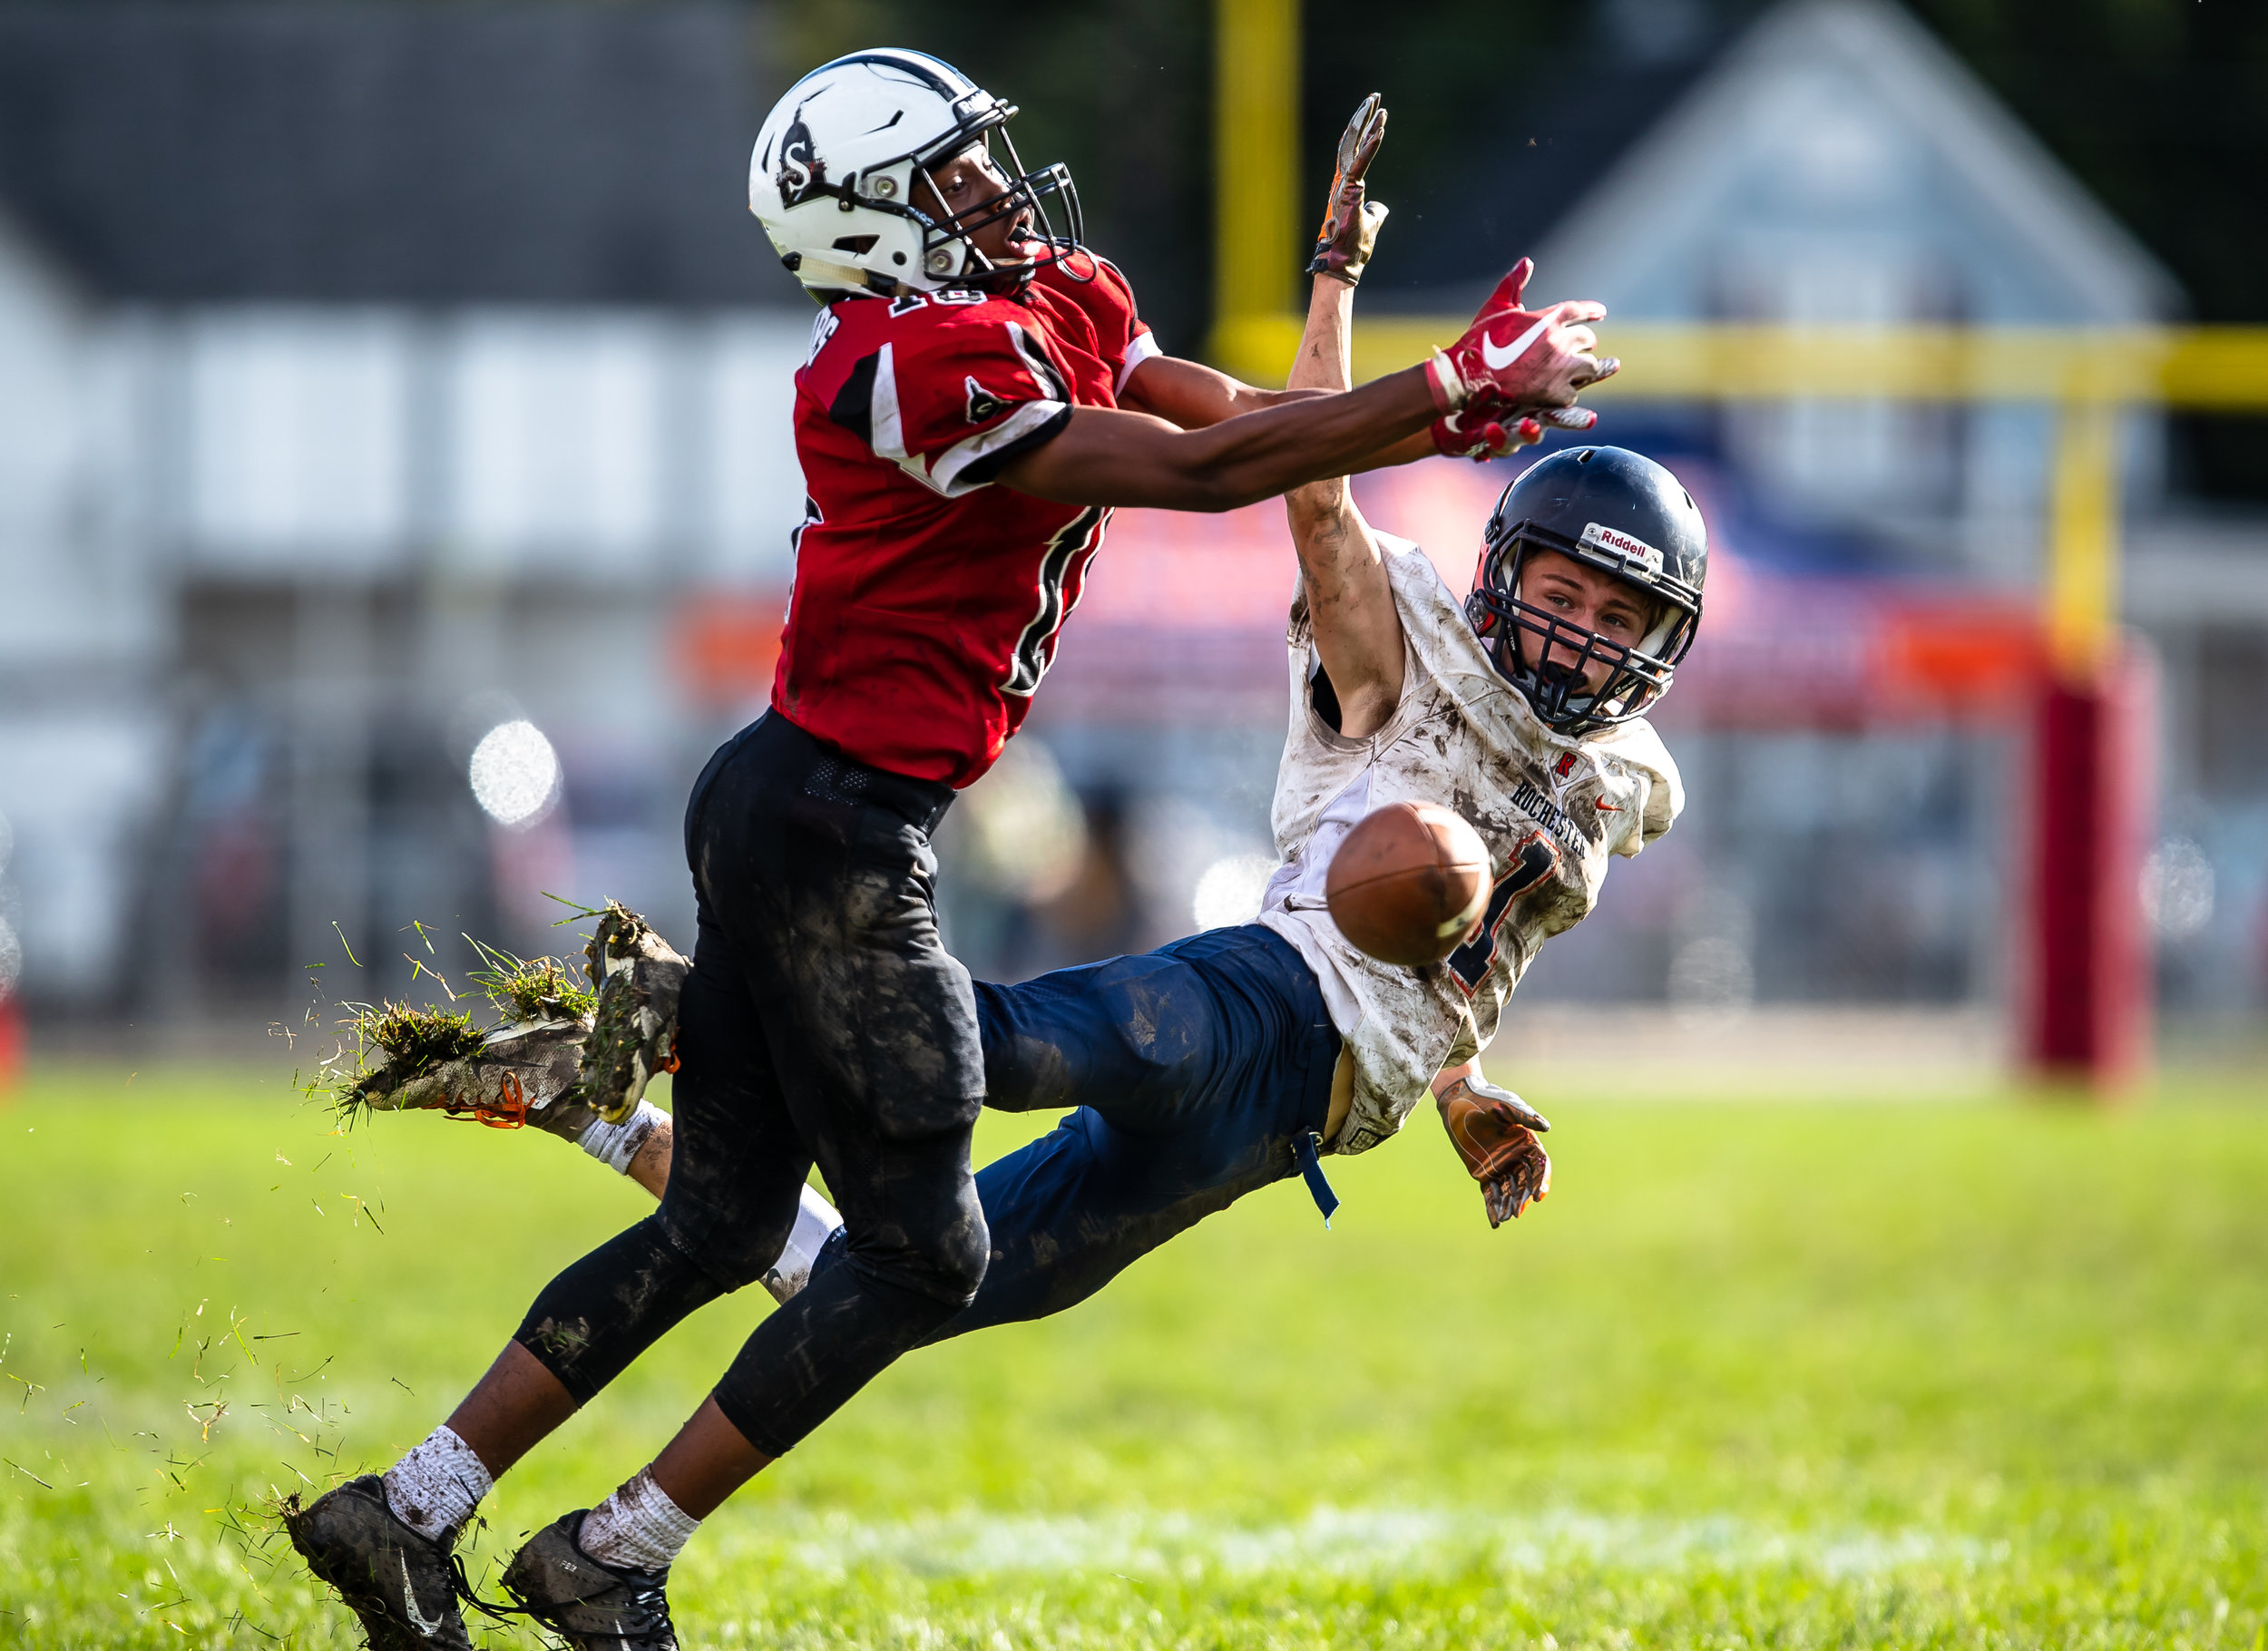 Springfield's Dylan Thomas (18) is called for pass interference while trying to keep Rochester's Riley Lewis (1) from making a catch in the second half at Memorial Stadium, Saturday, Oct. 6, 2018, in Springfield, Ill. [Justin L. Fowler/The State Journal-Register]